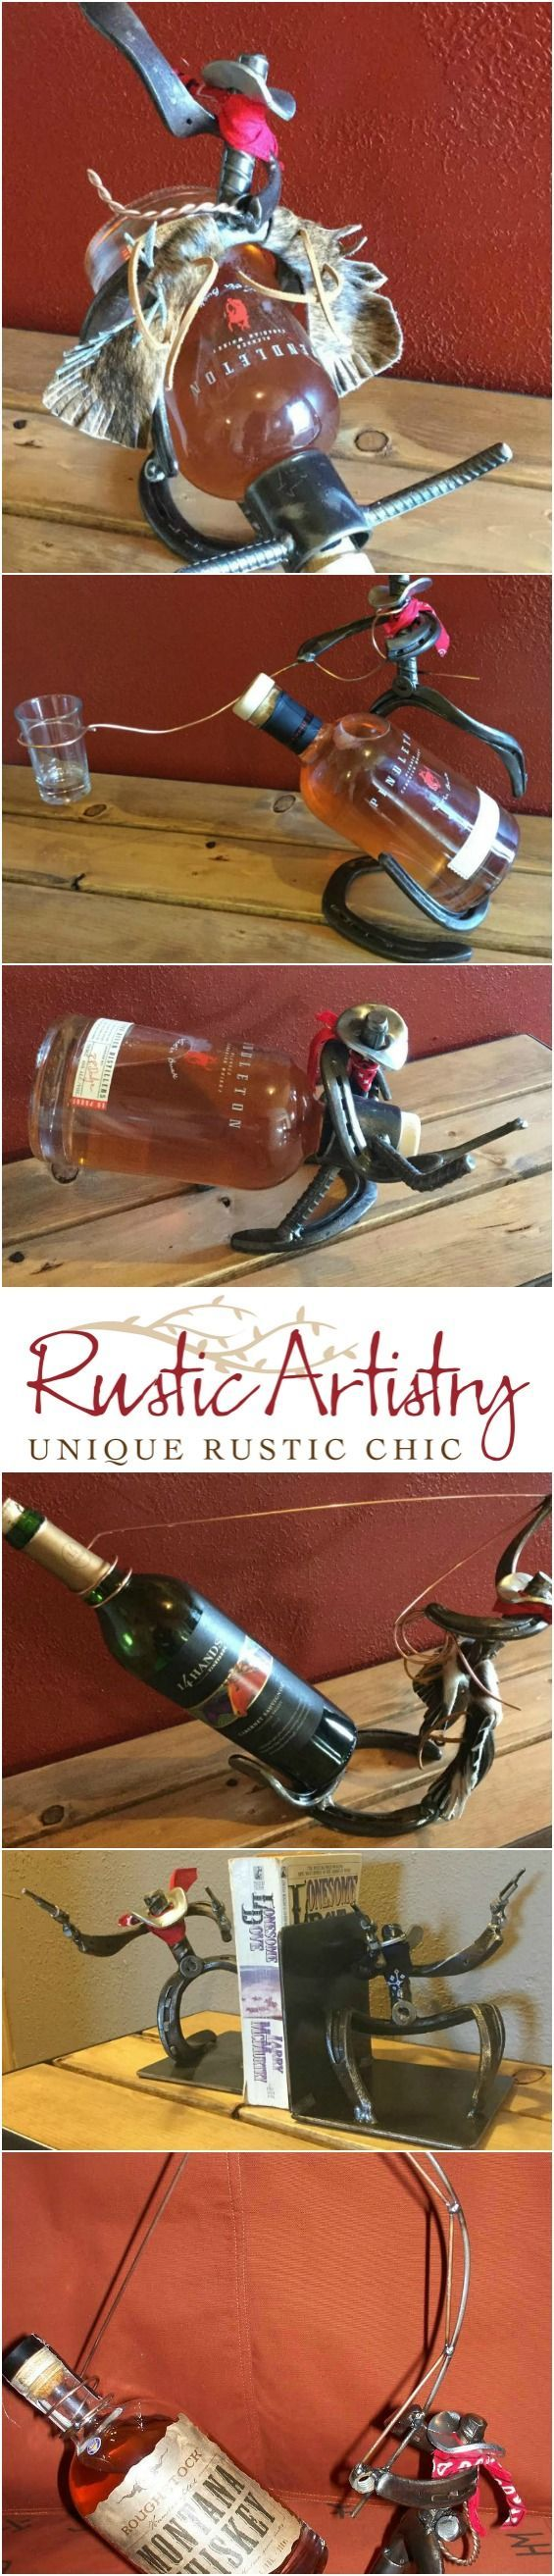 So fun! Horse shoe cowboy bottle holders and book ends. Perfect for rodeo fans. http://rusticartistry.com/product/horse-shoe-cowboy-bottle-holder/ western decorating ideas